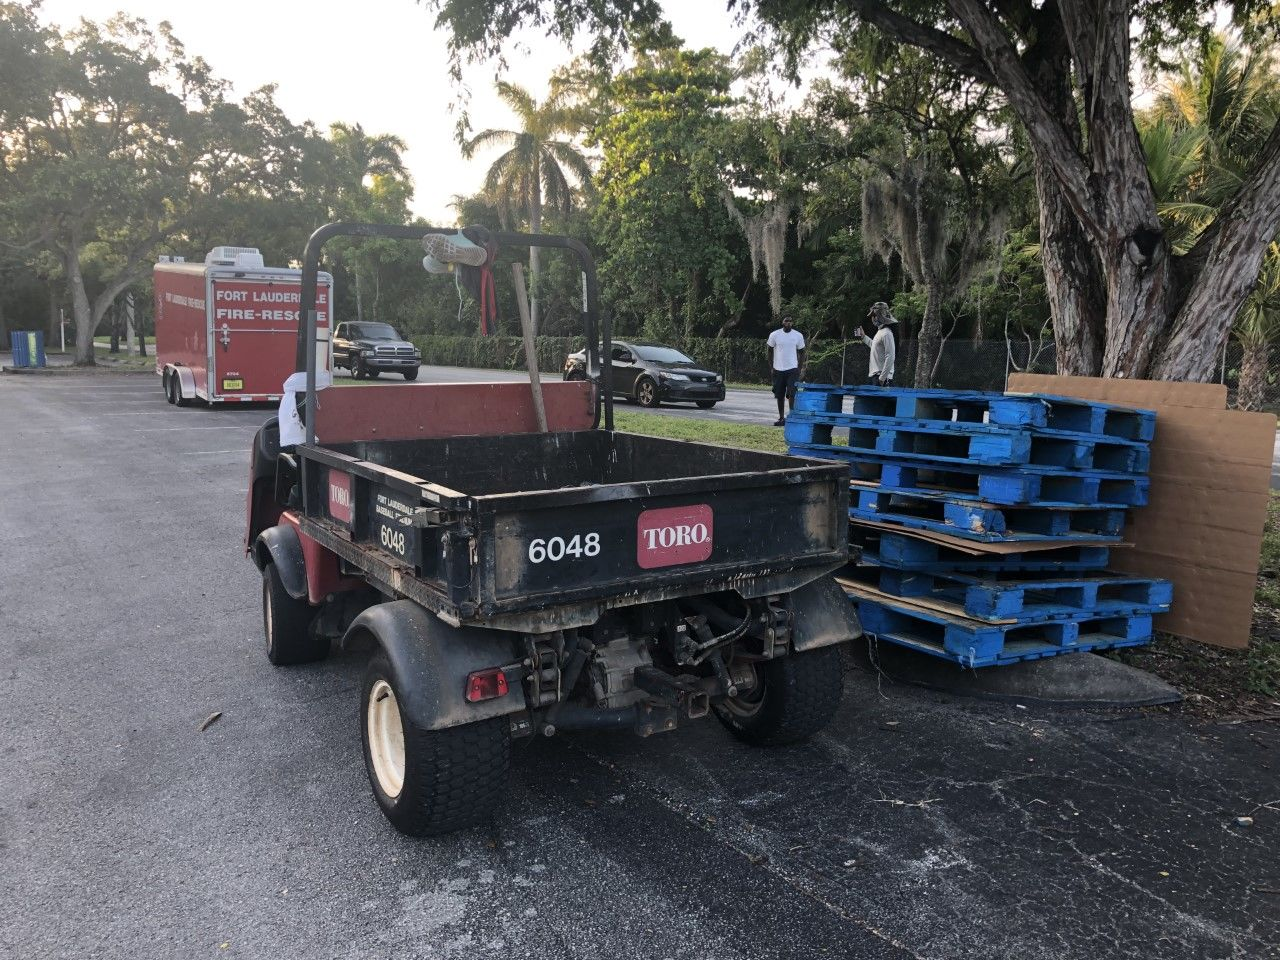 Florida set to restock water distribution center in Fort Lauderdale (WPEC)